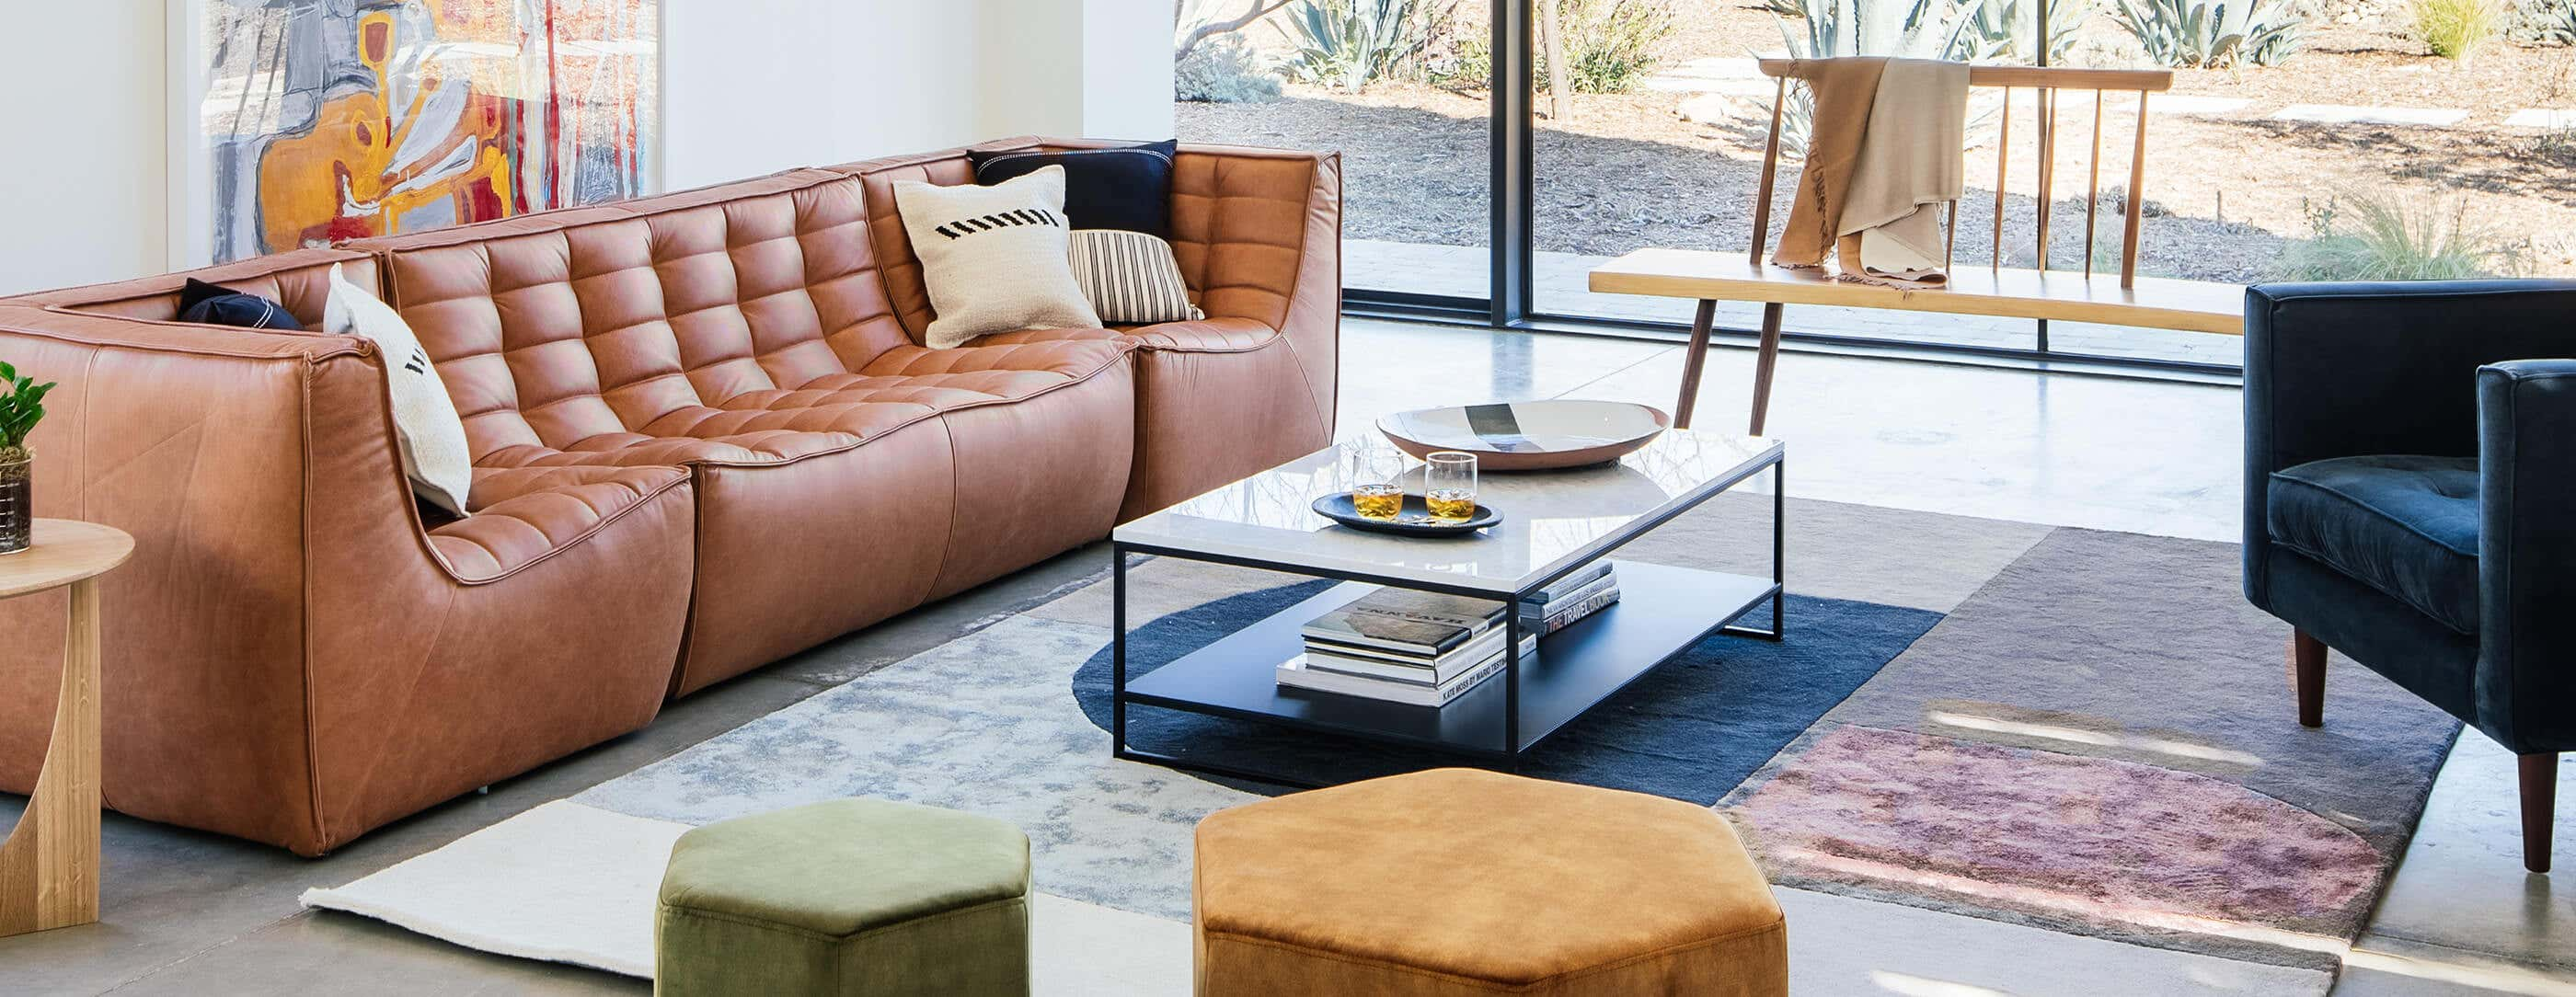 Modular Sofa in IW-styled Living Room